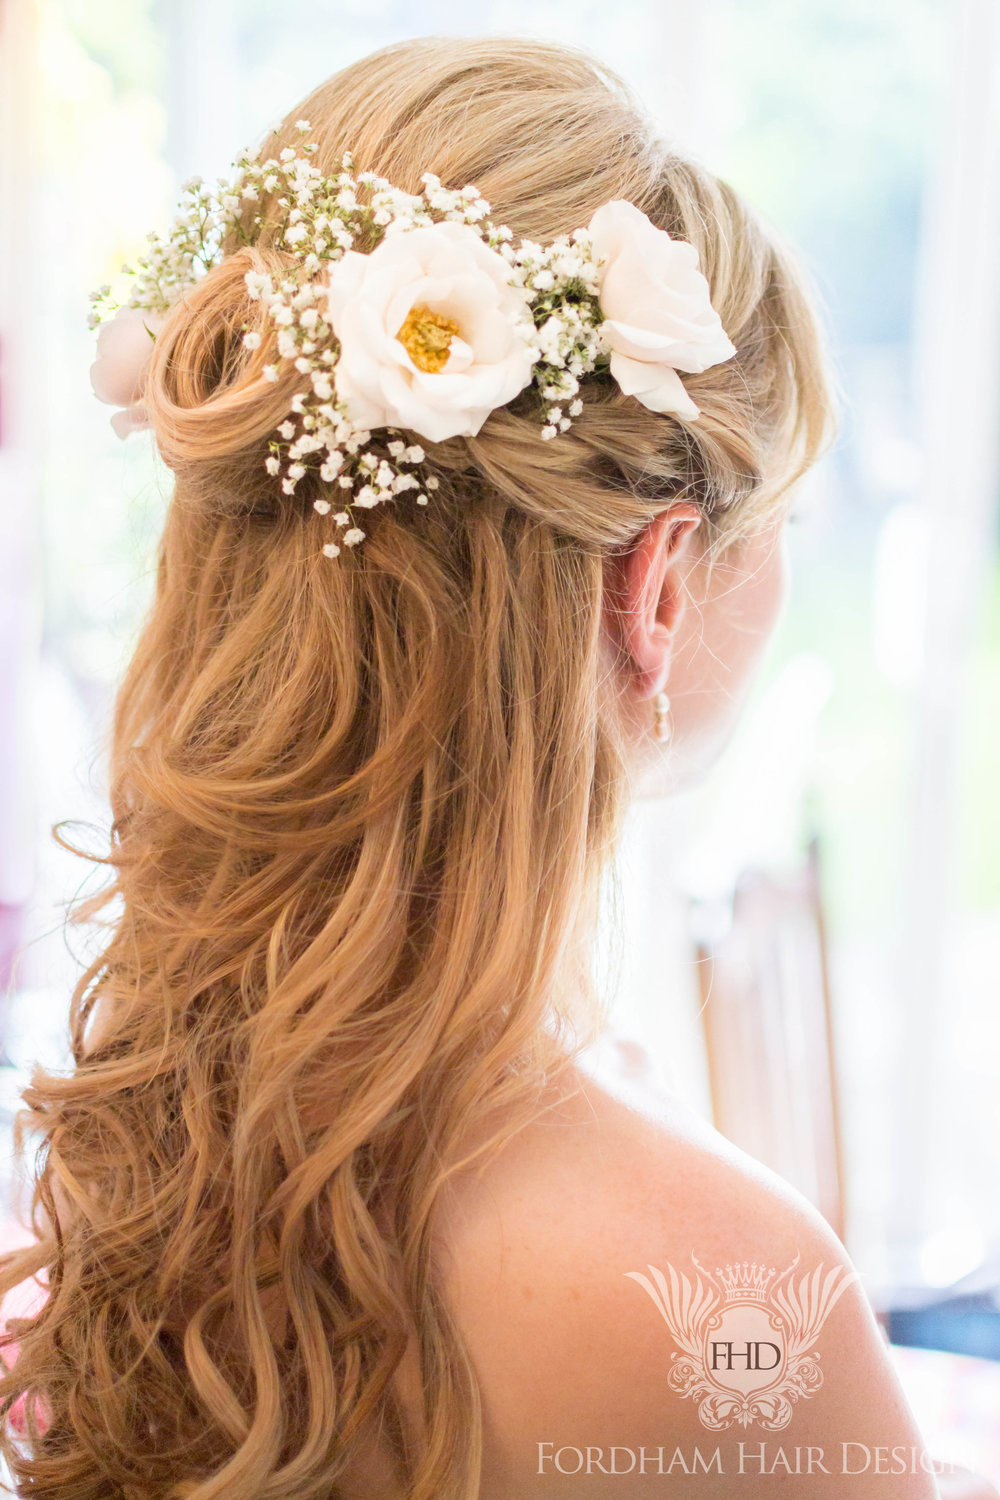 Berkley Castle Wedding Hair